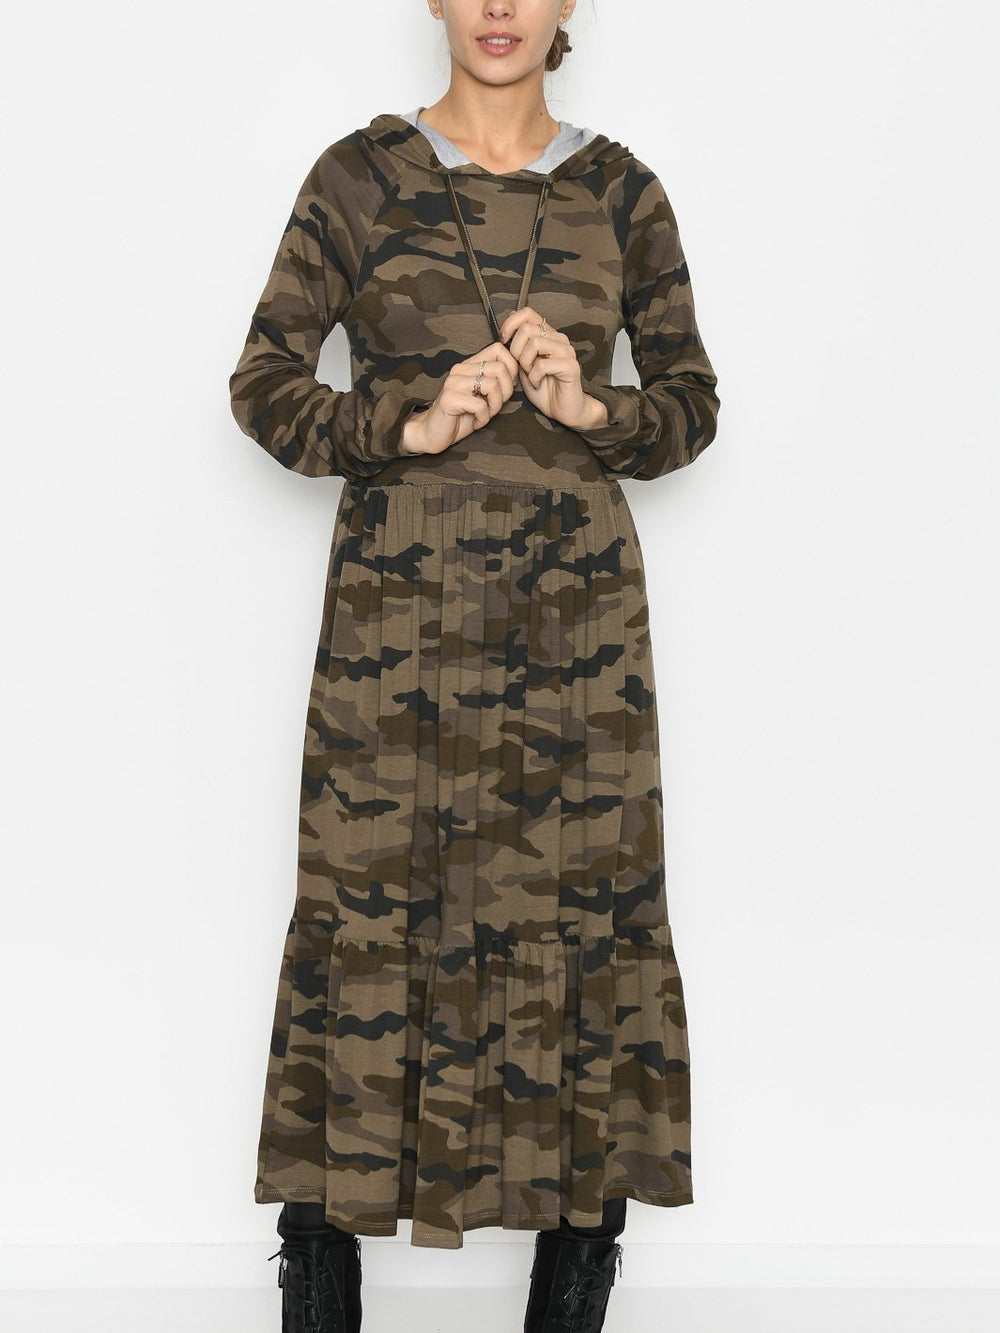 Kaffe KAhemmi dress green/brown army print - Online-Mode